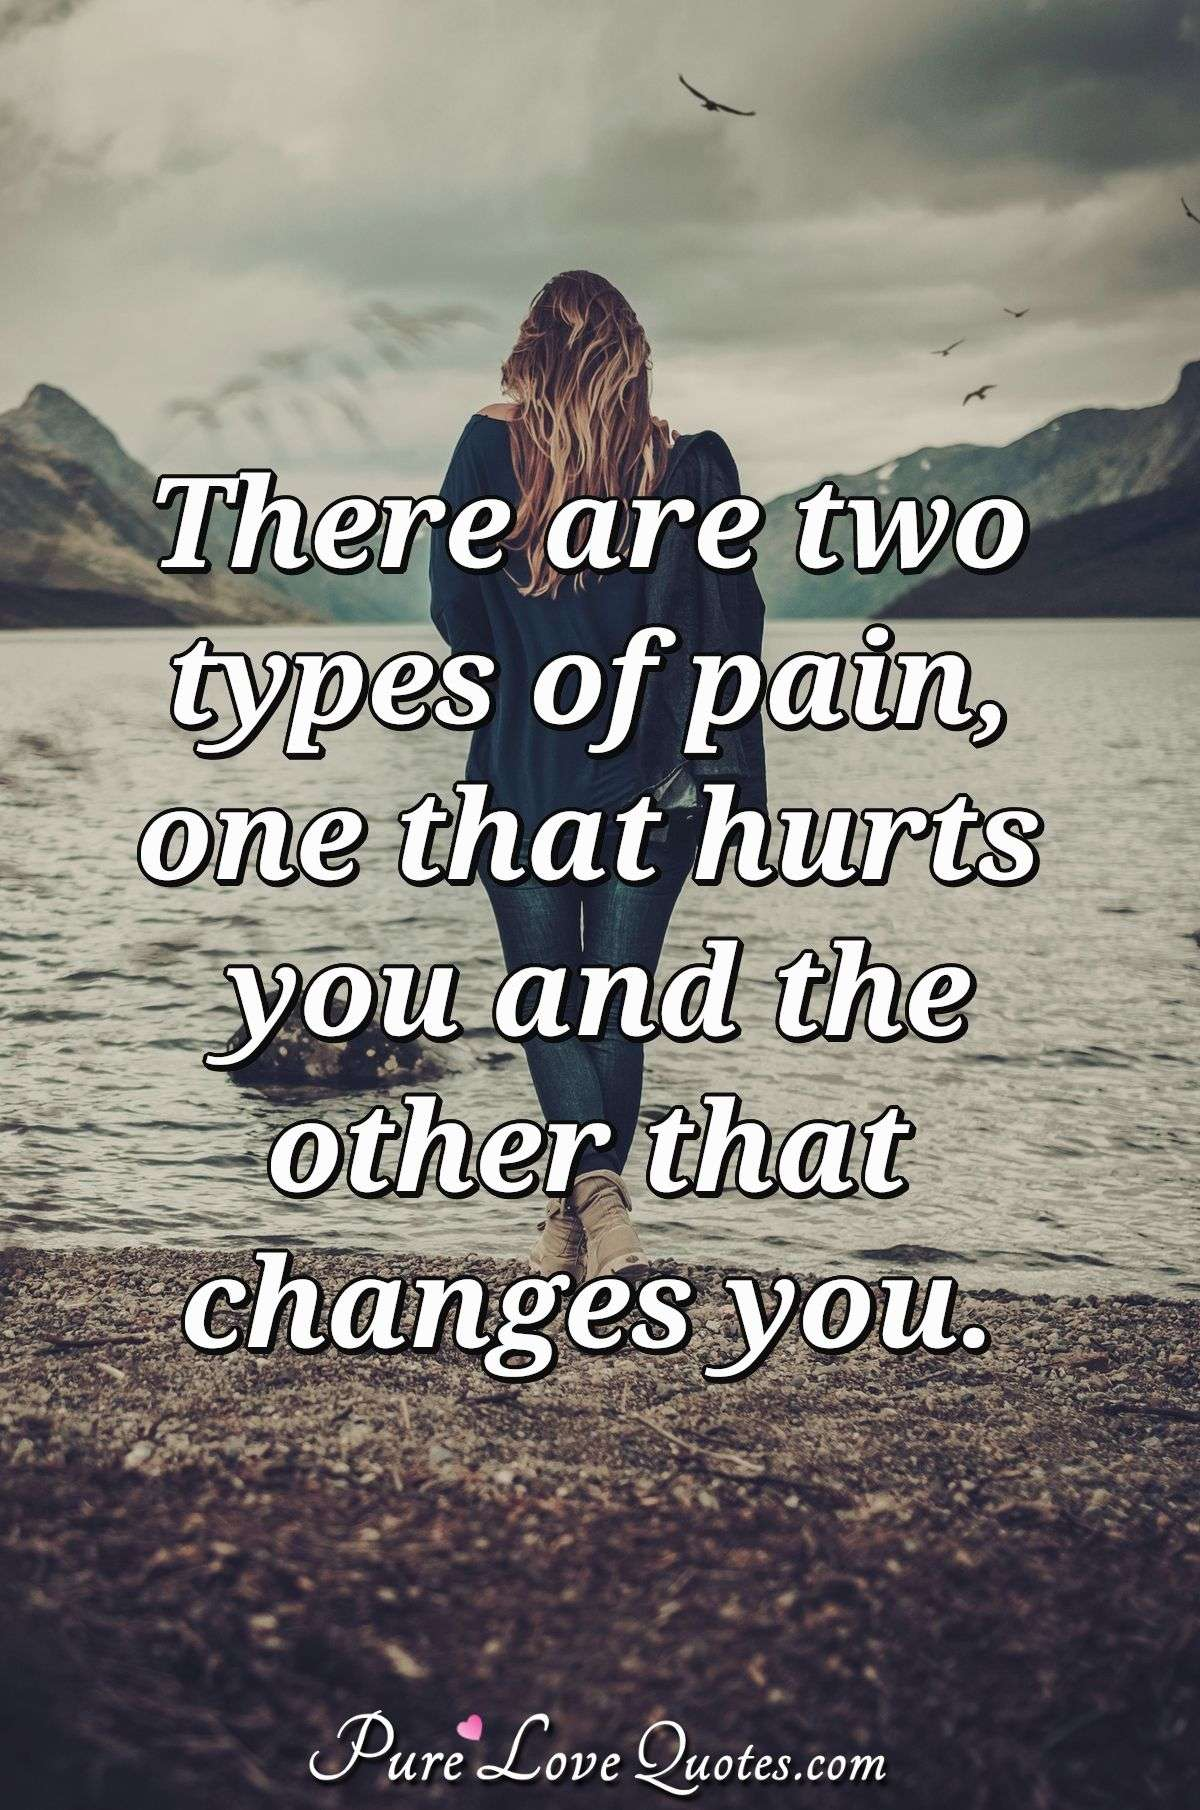 There are two types of pain, one that hurts you and the other that